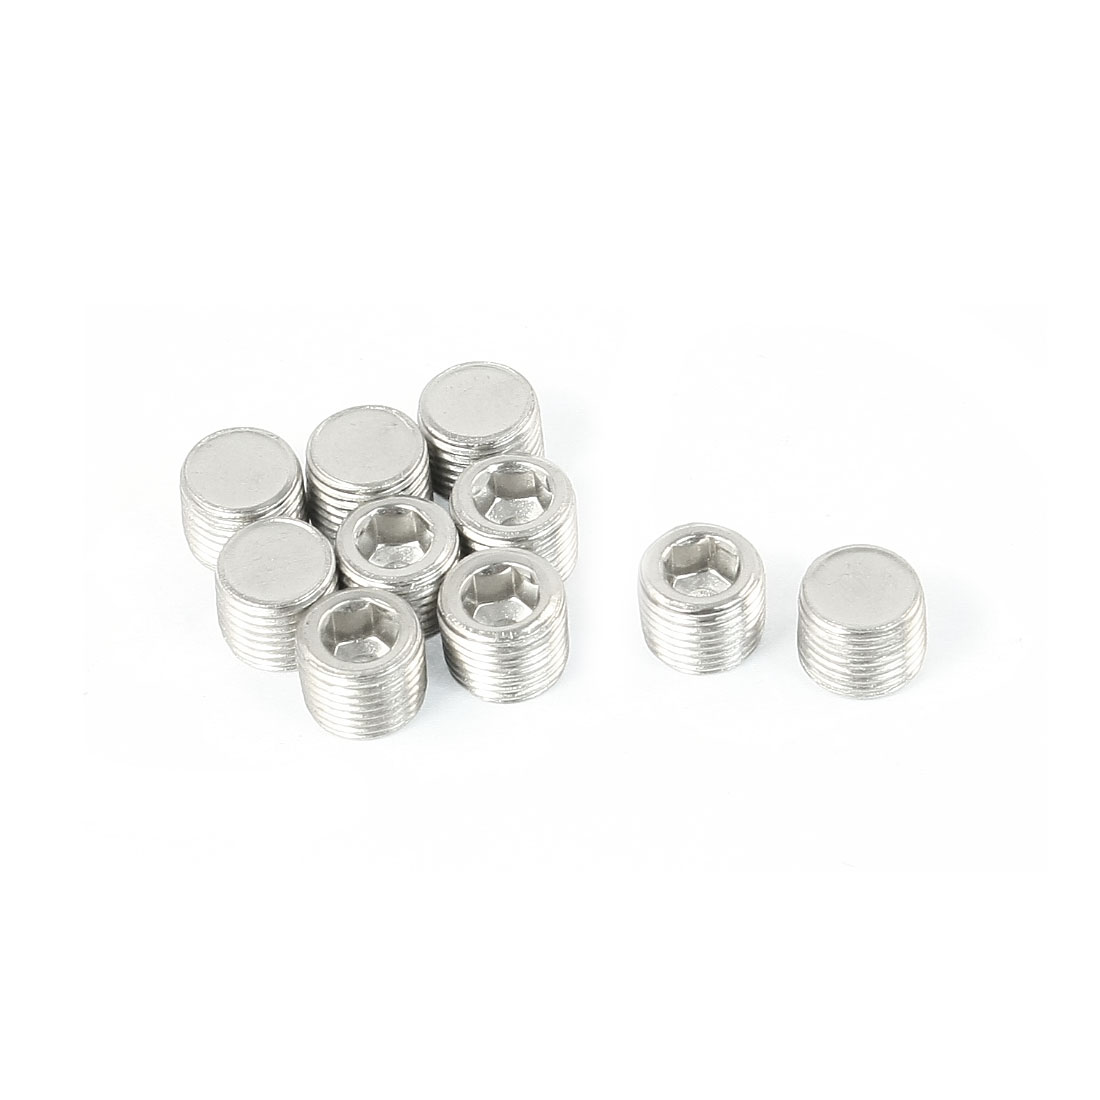 10PCS Nickel Plated 1/8PT Male Thread Cap Silver Tone for Air Pneumatic Fluids